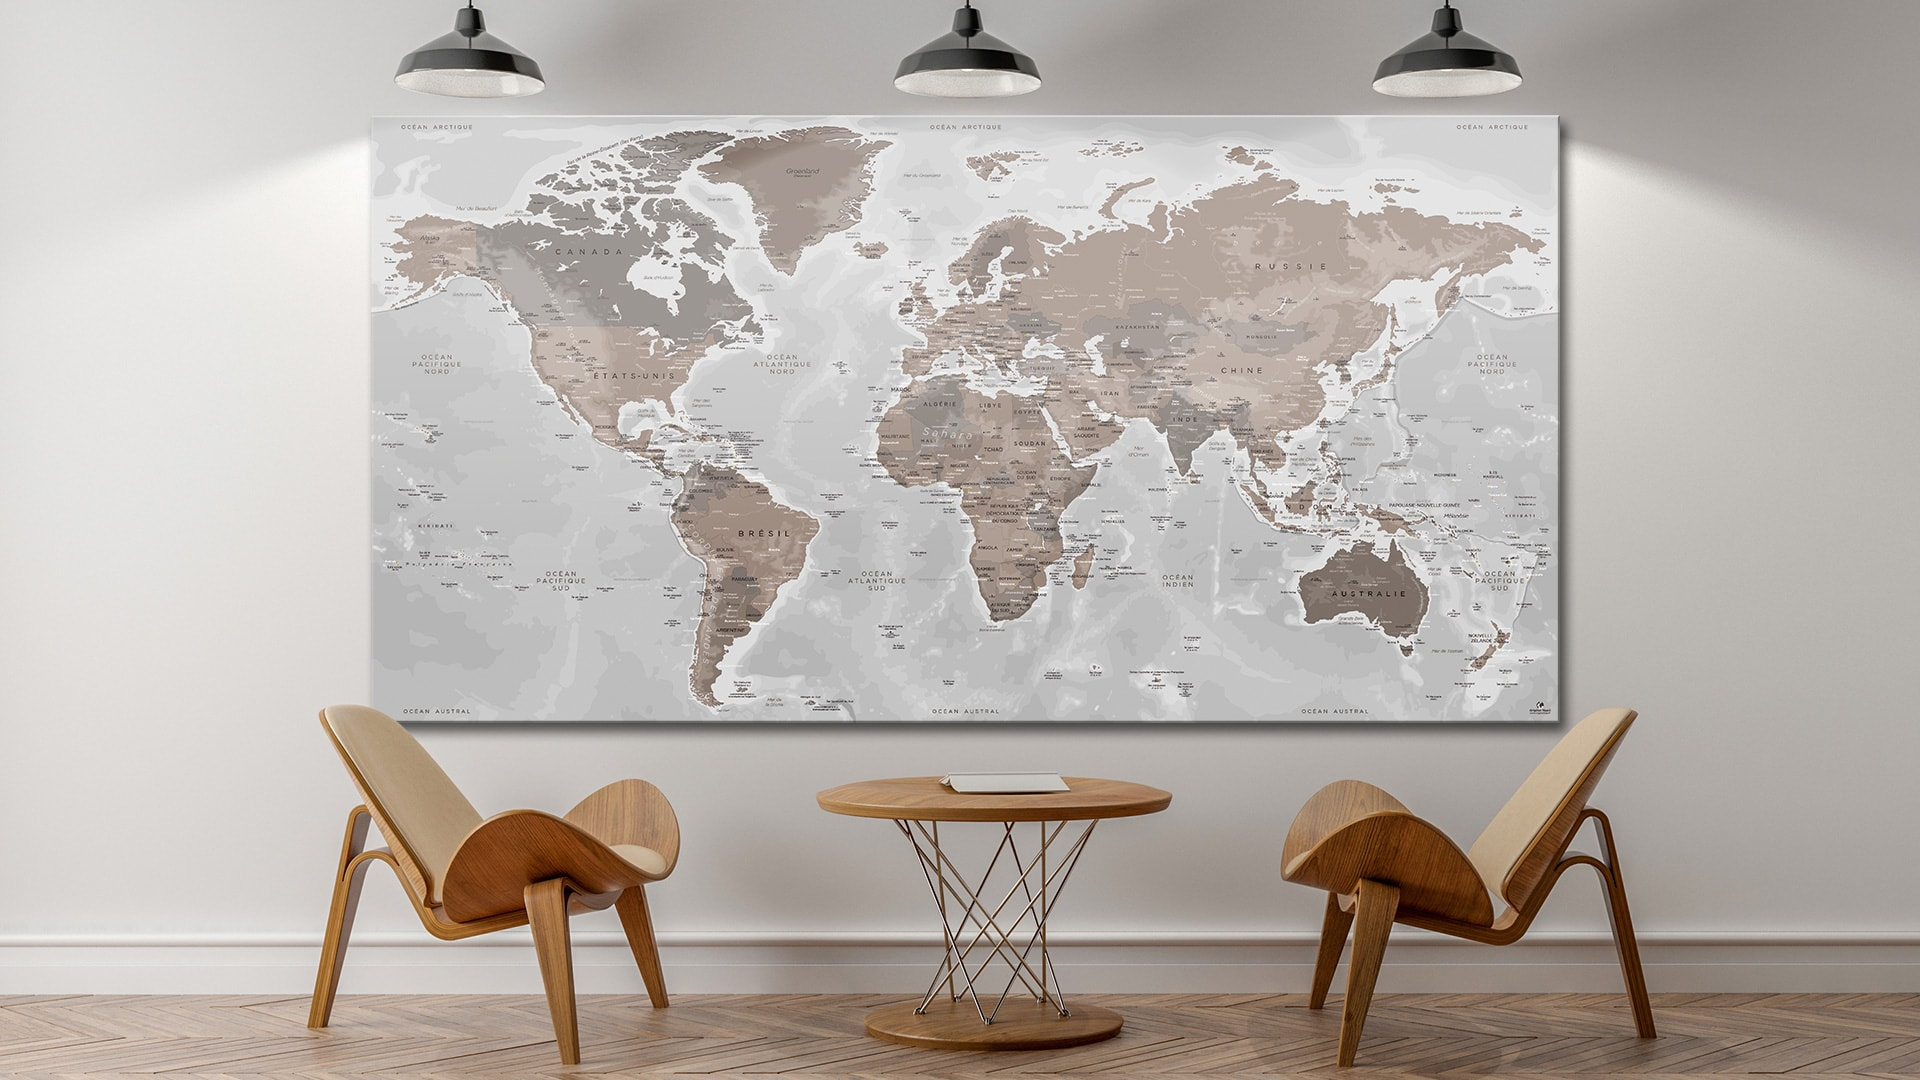 carte du monde g reme original map orignal map carte monde. Black Bedroom Furniture Sets. Home Design Ideas